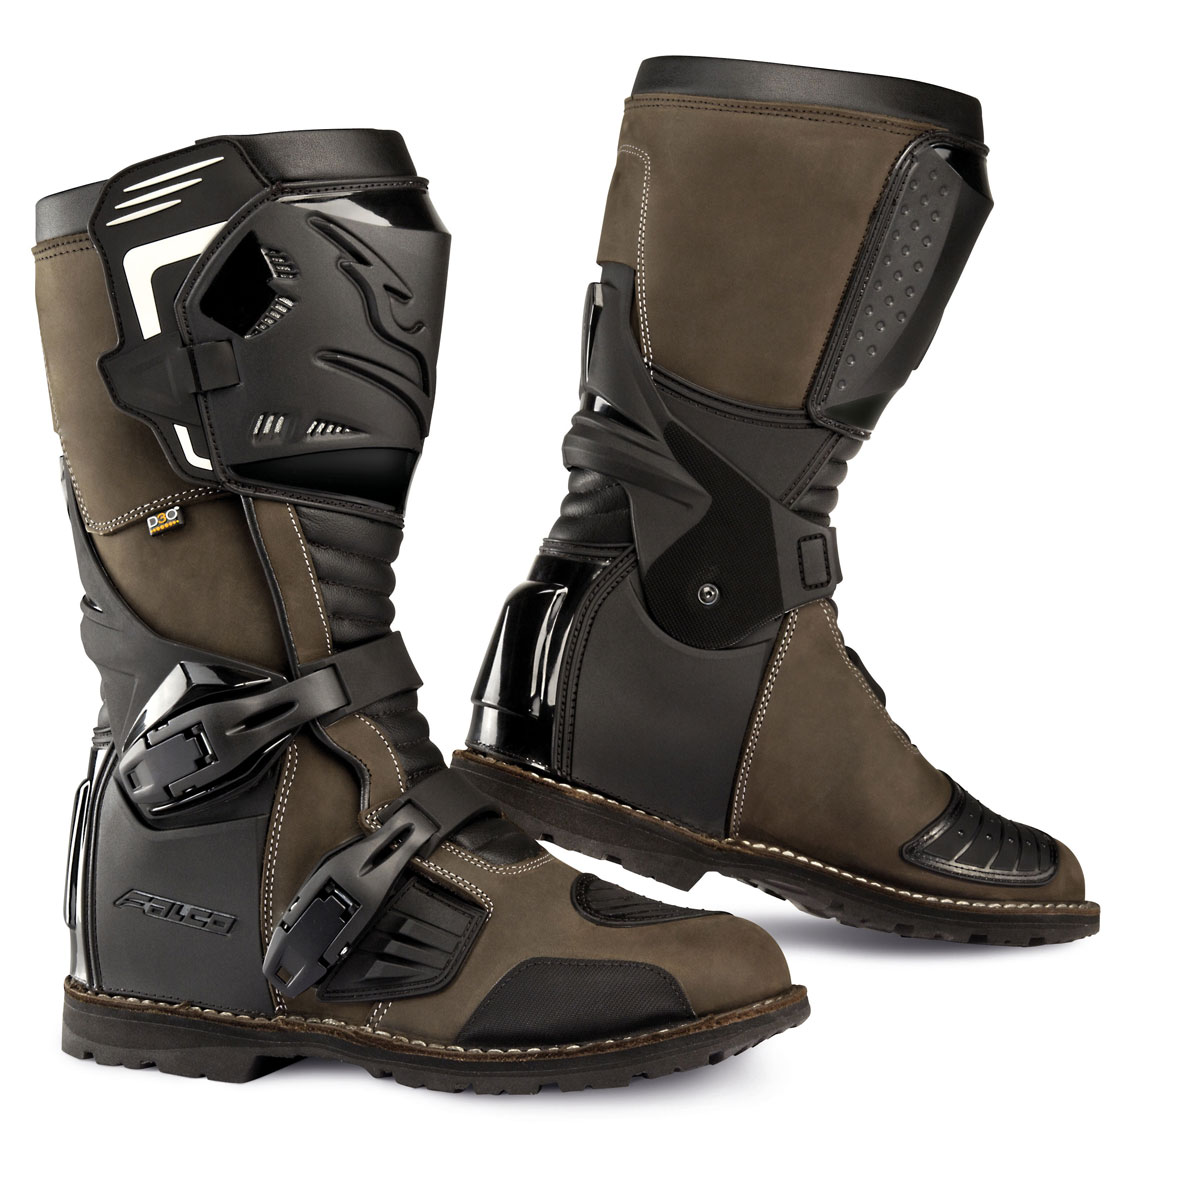 AVANTOUR 1 Adventure Motorcycle Boots